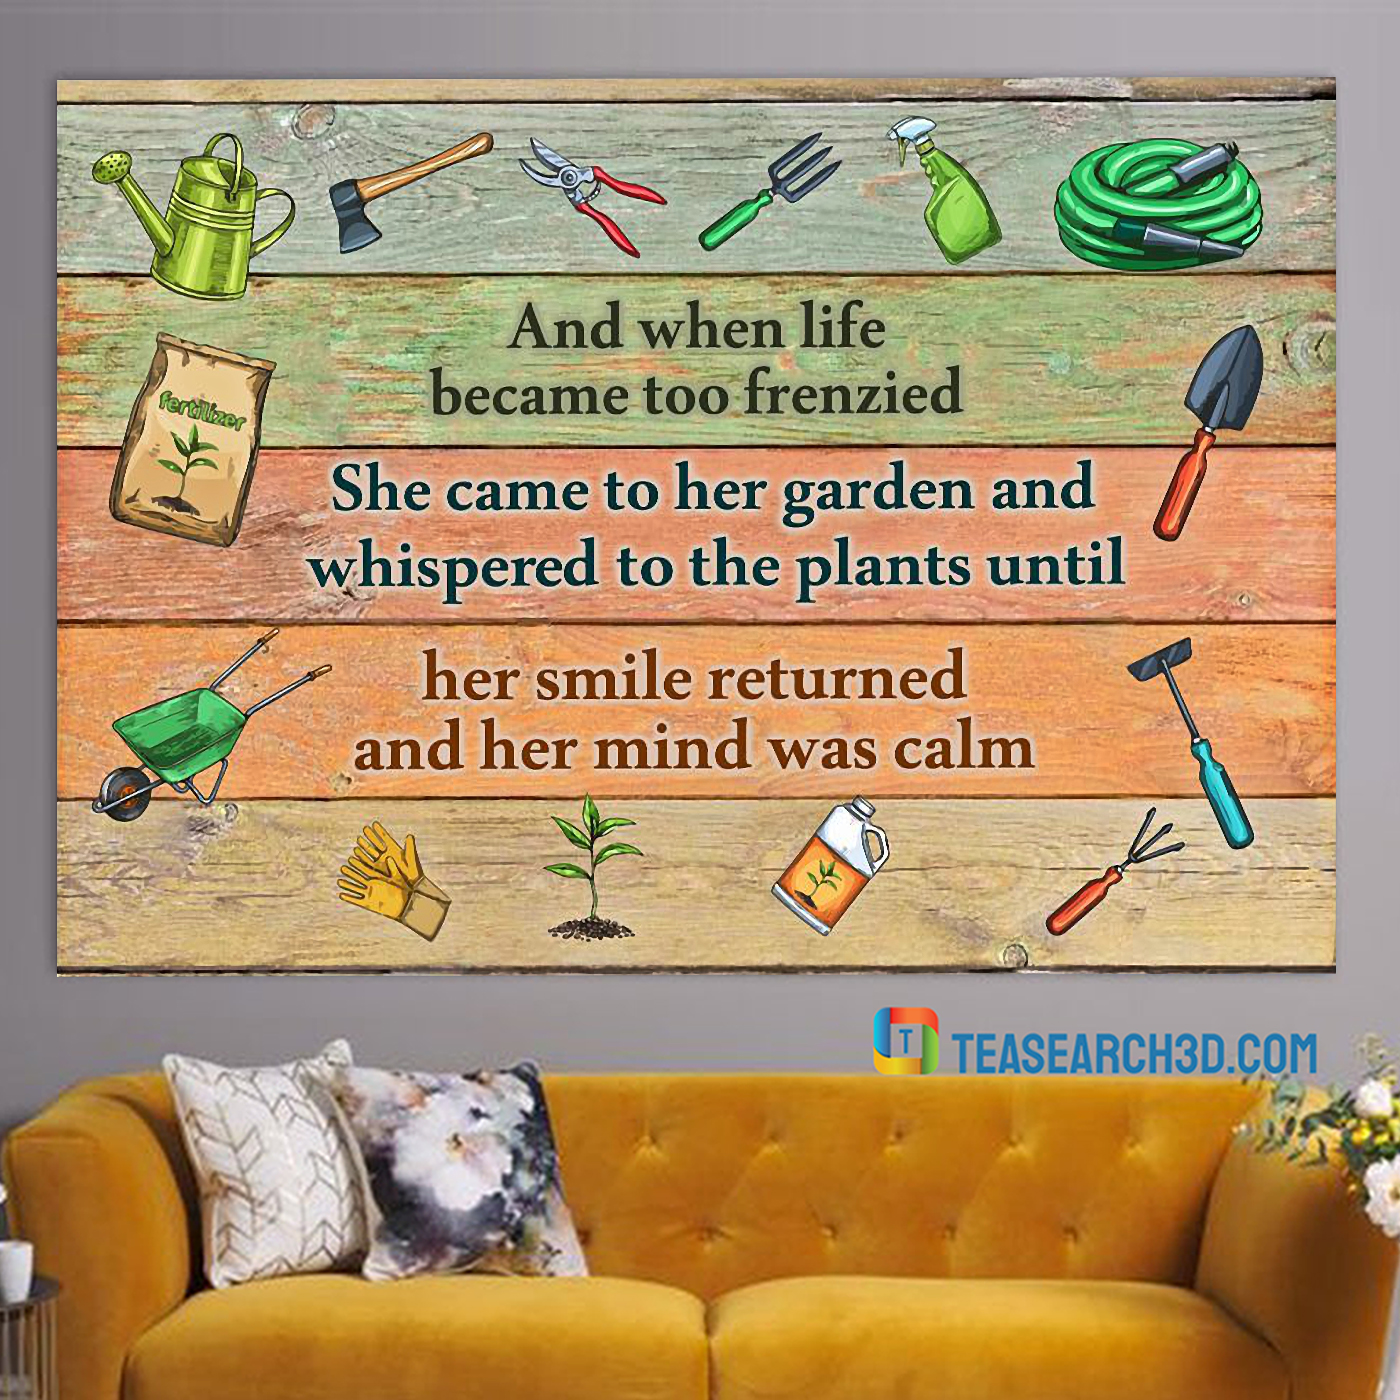 Gardening and when life became too frenzied poster A3